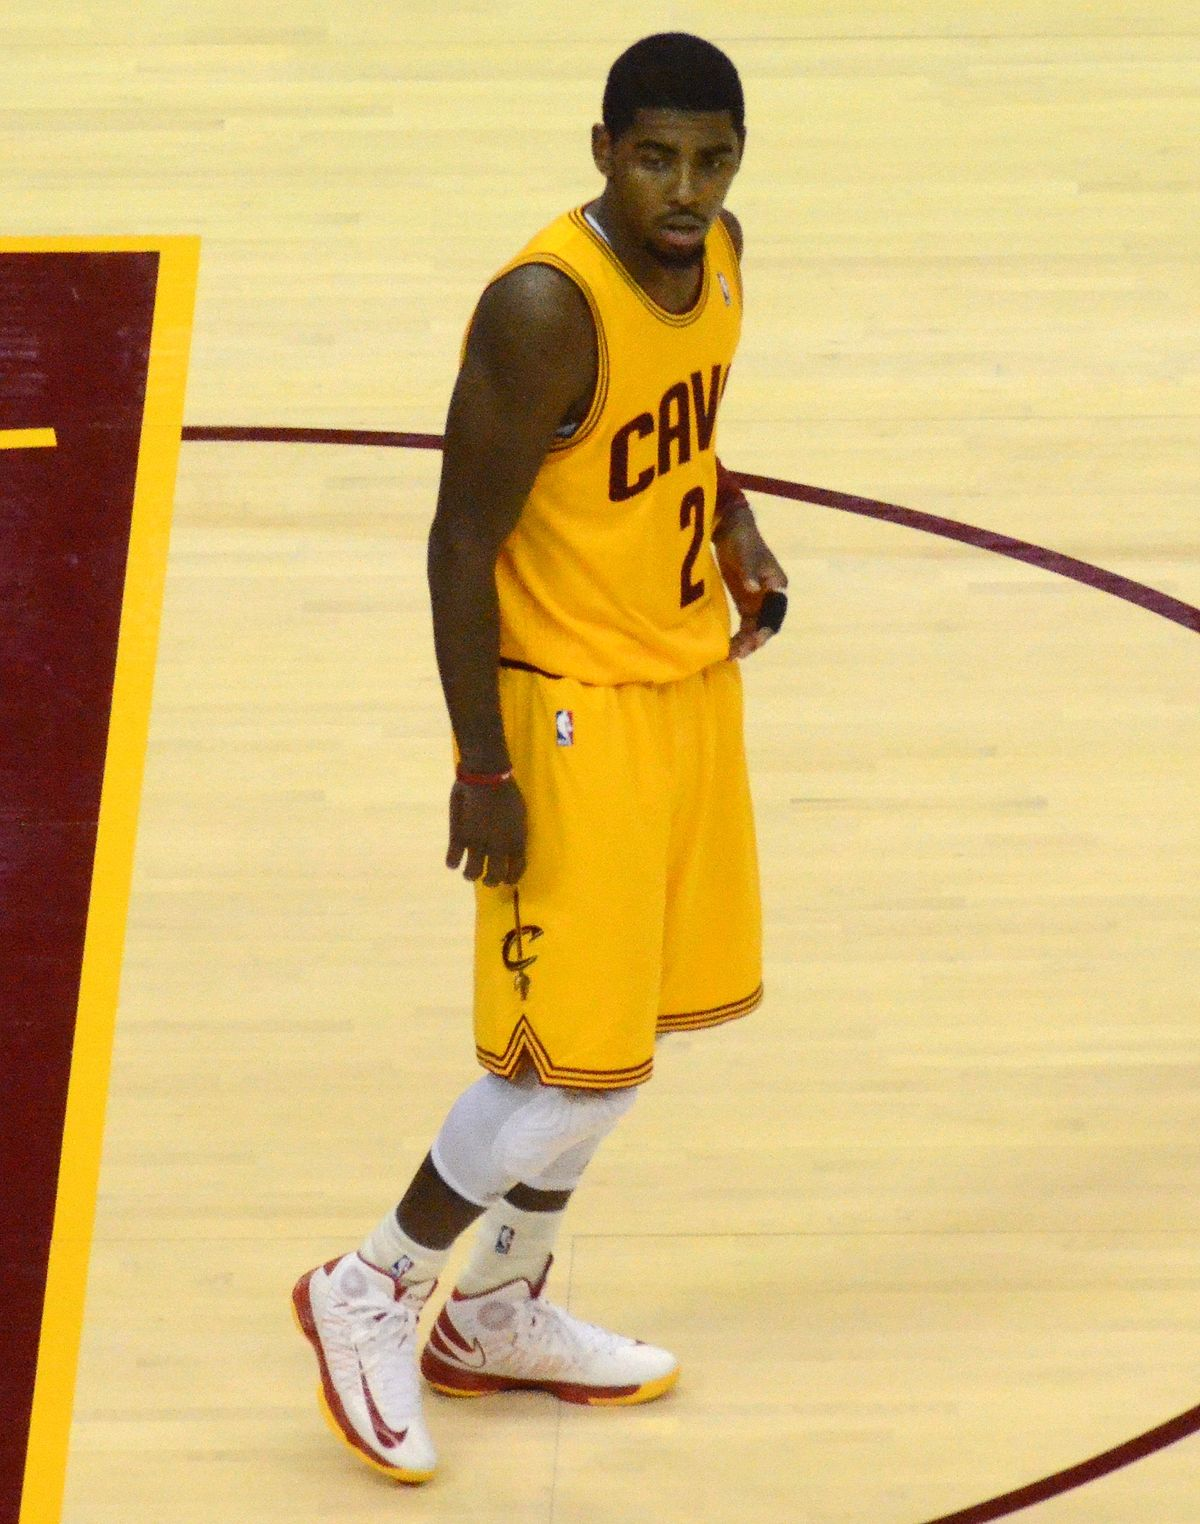 Kyrie Irving - Wikidata